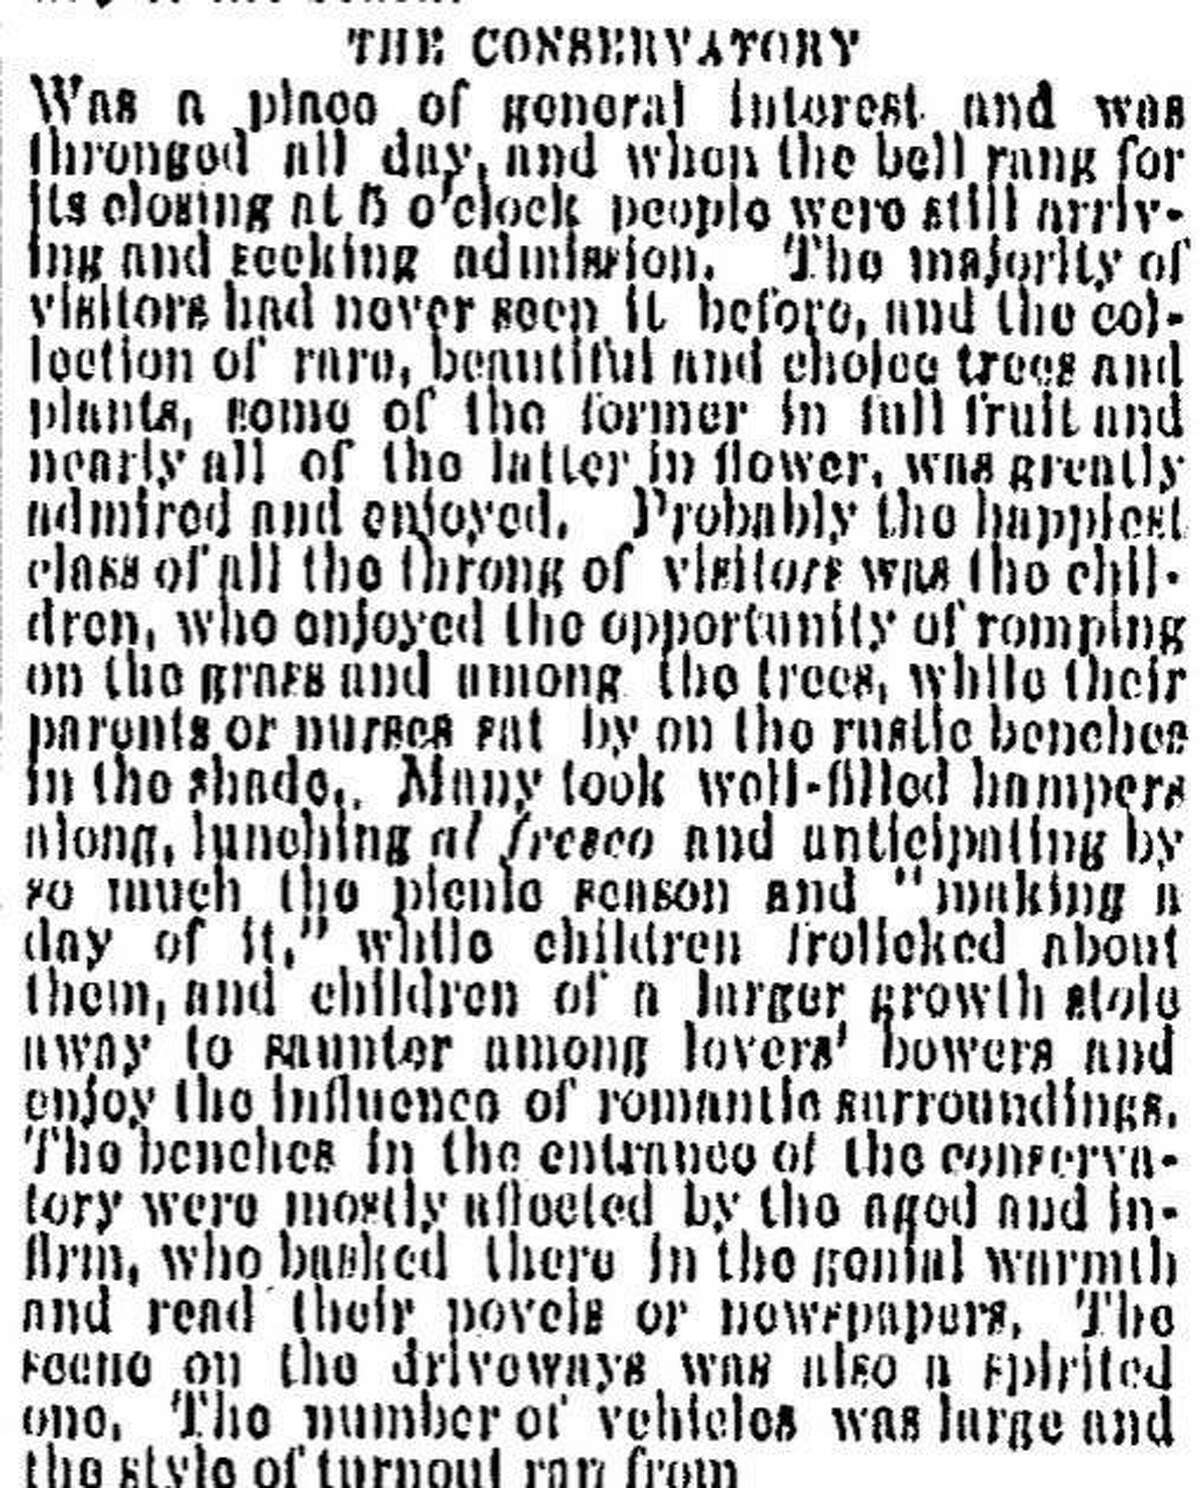 A Chronicle story about a leisurely day at the Conservatory of Flowers as well as Golden Gate Park, February 29, 1880